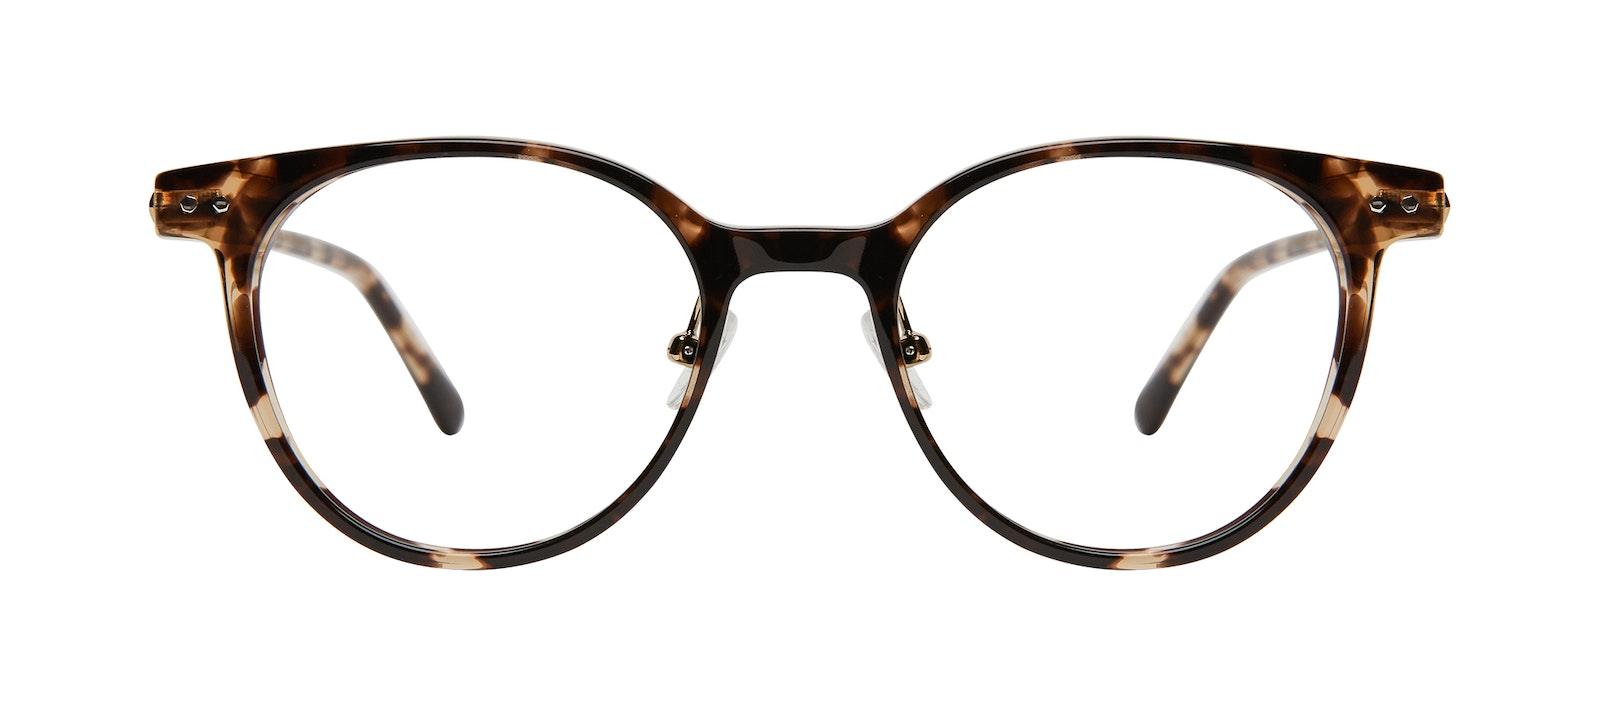 Affordable Fashion Glasses Round Eyeglasses Women Lightheart Leopard Front